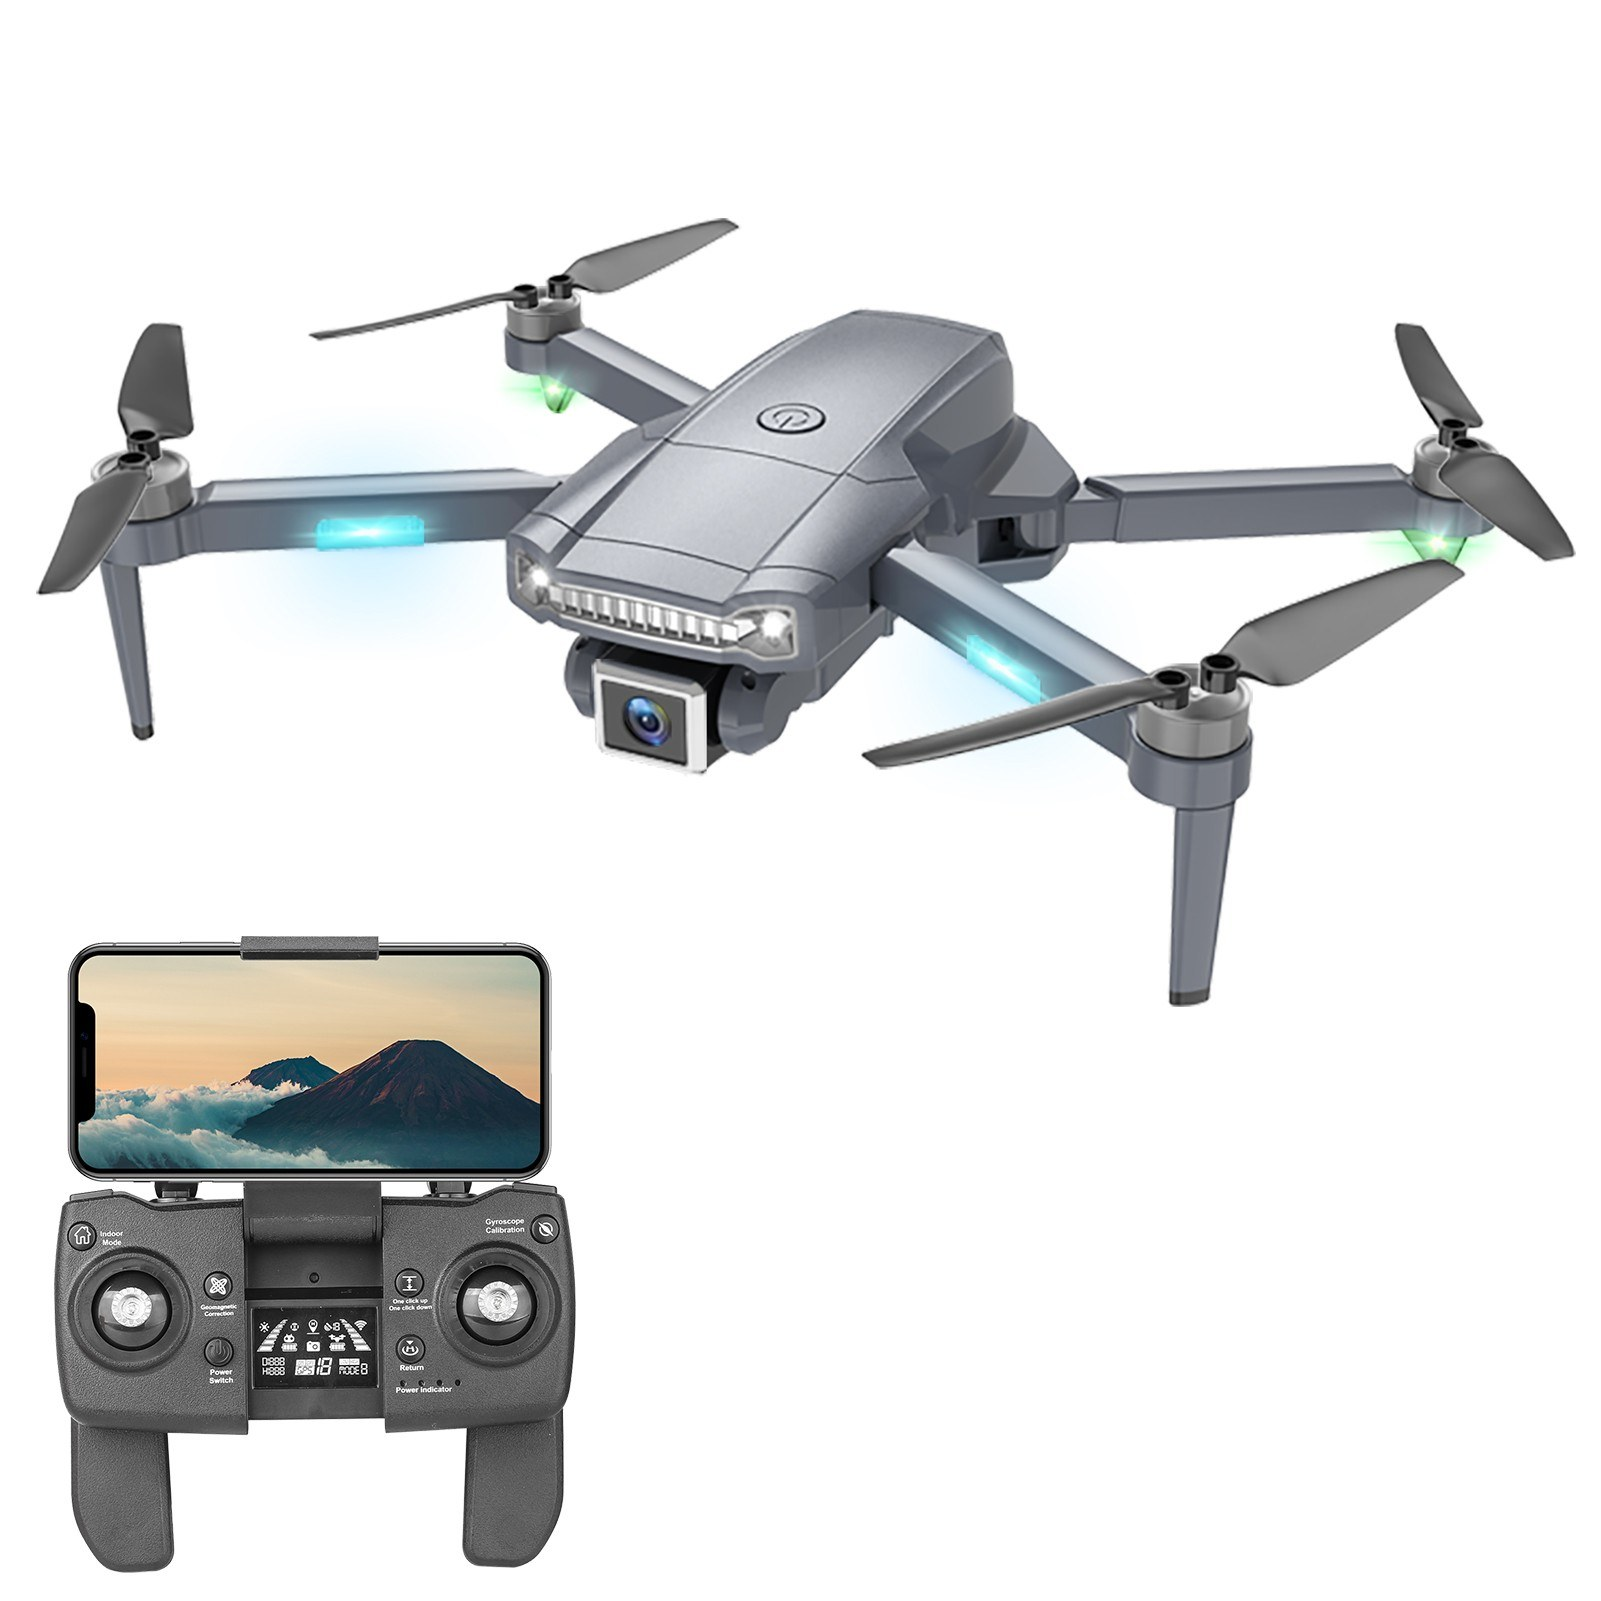 Tomtop - 55% OFF S179 5G WiFi FPV GPS 4K Camera RC Drone, Free Shipping $99.99